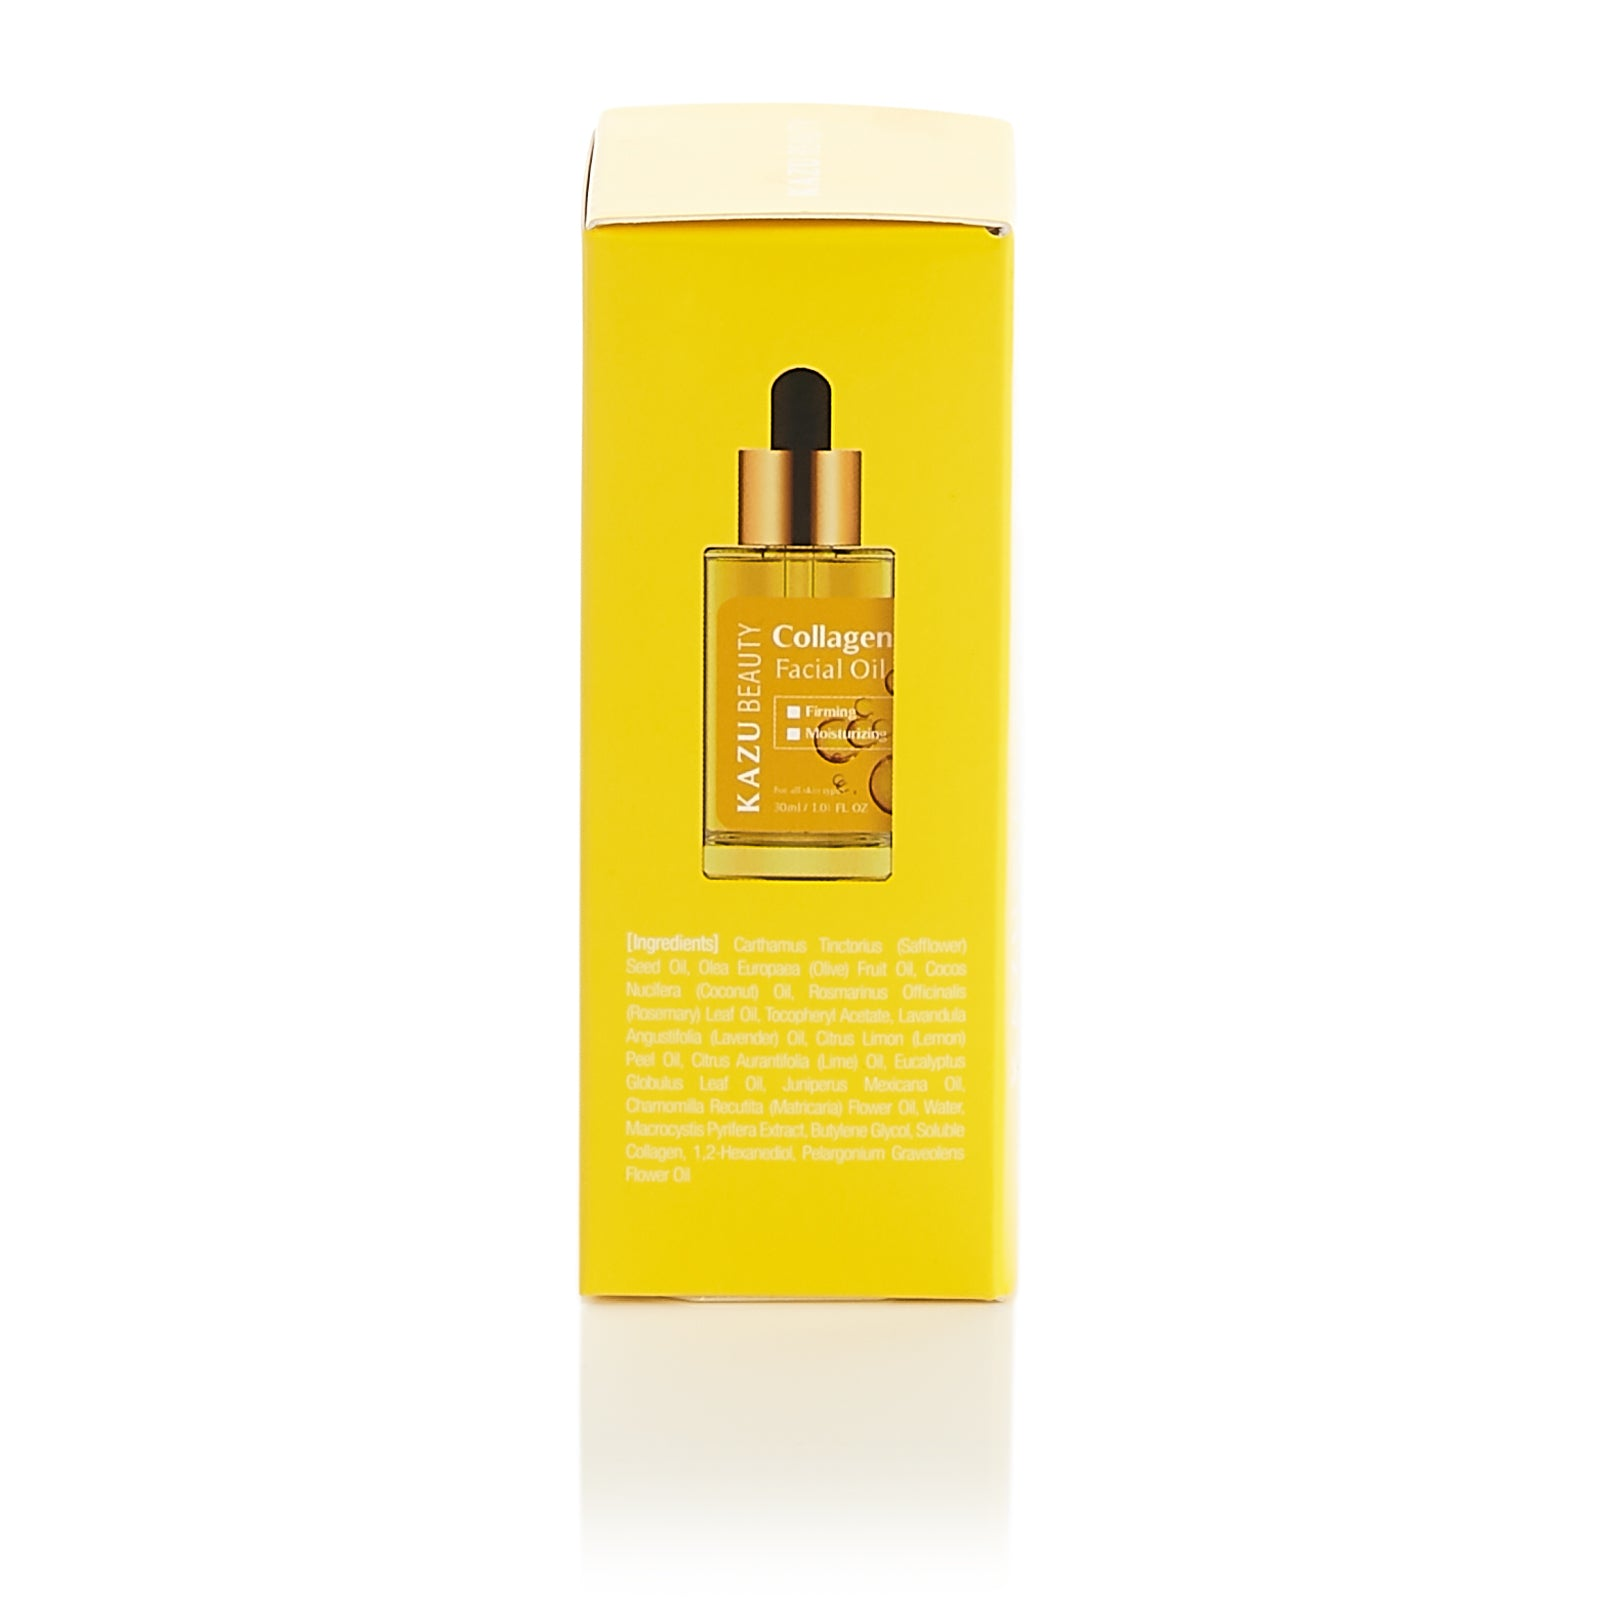 KAZU Beauty Collagen Facial Oil